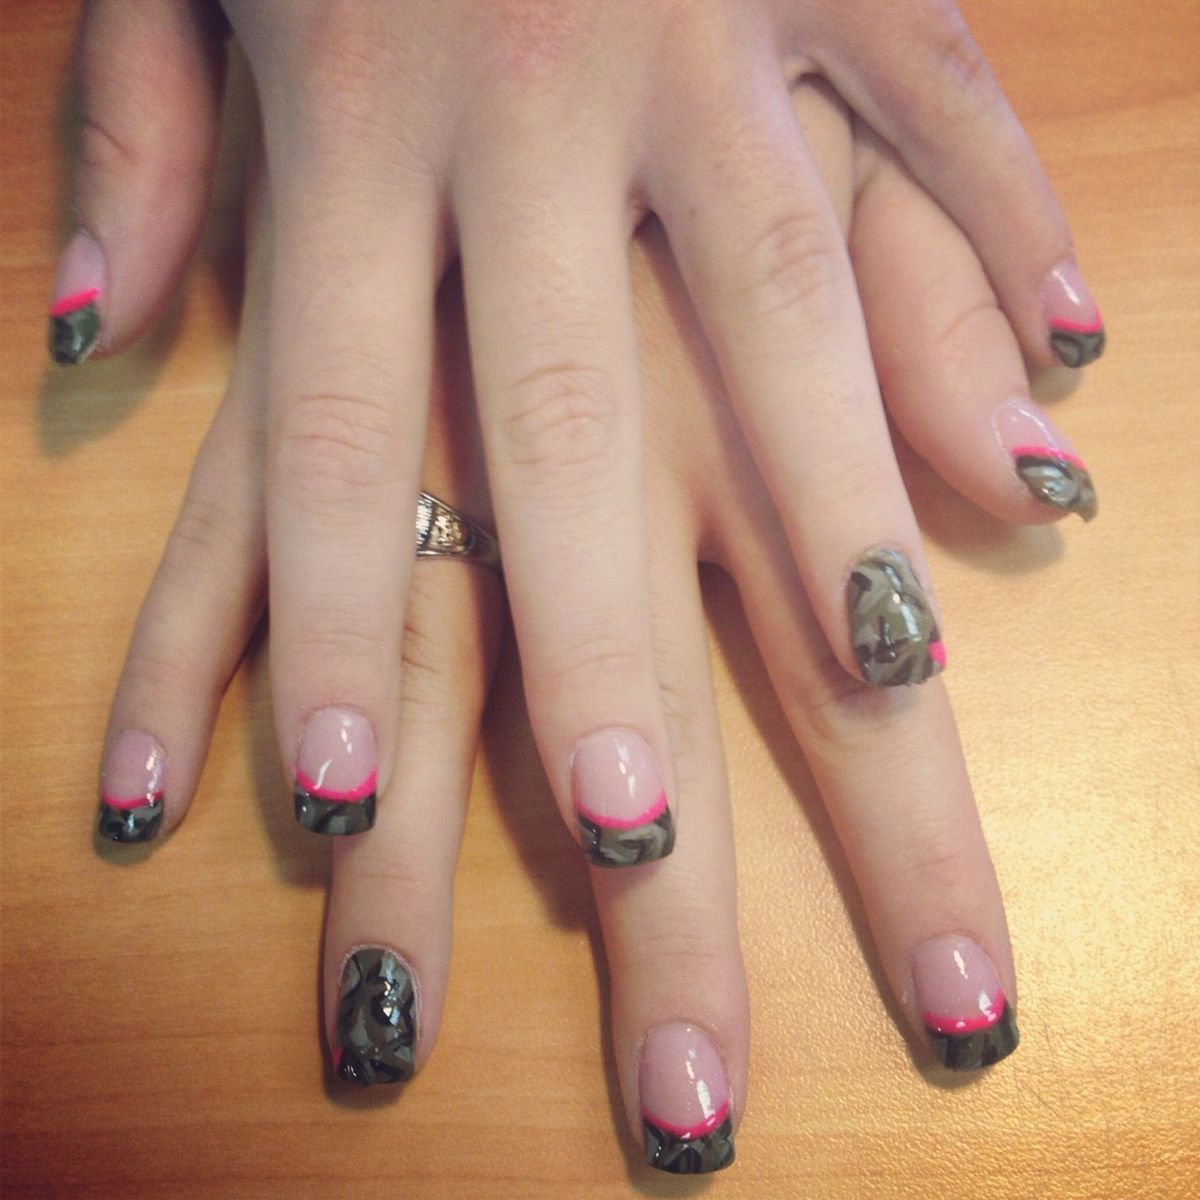 pinmichelle alexander leblanc on nails designs | pinterest